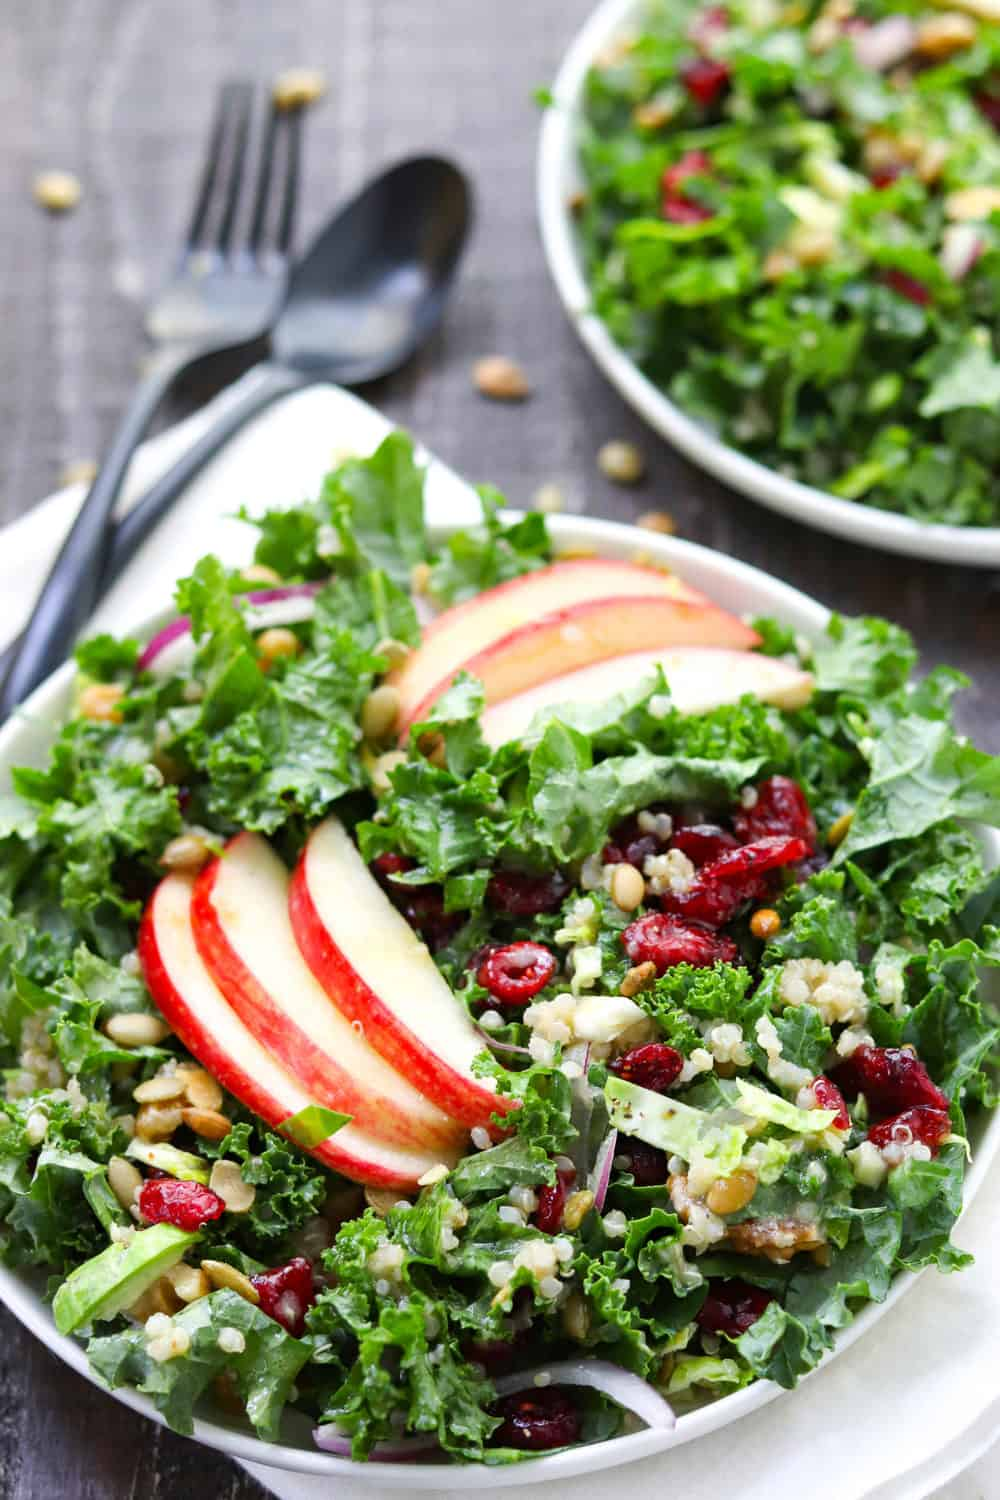 chopped kale salad with apples and onions mixed together on a white round plate with silverware next to it.